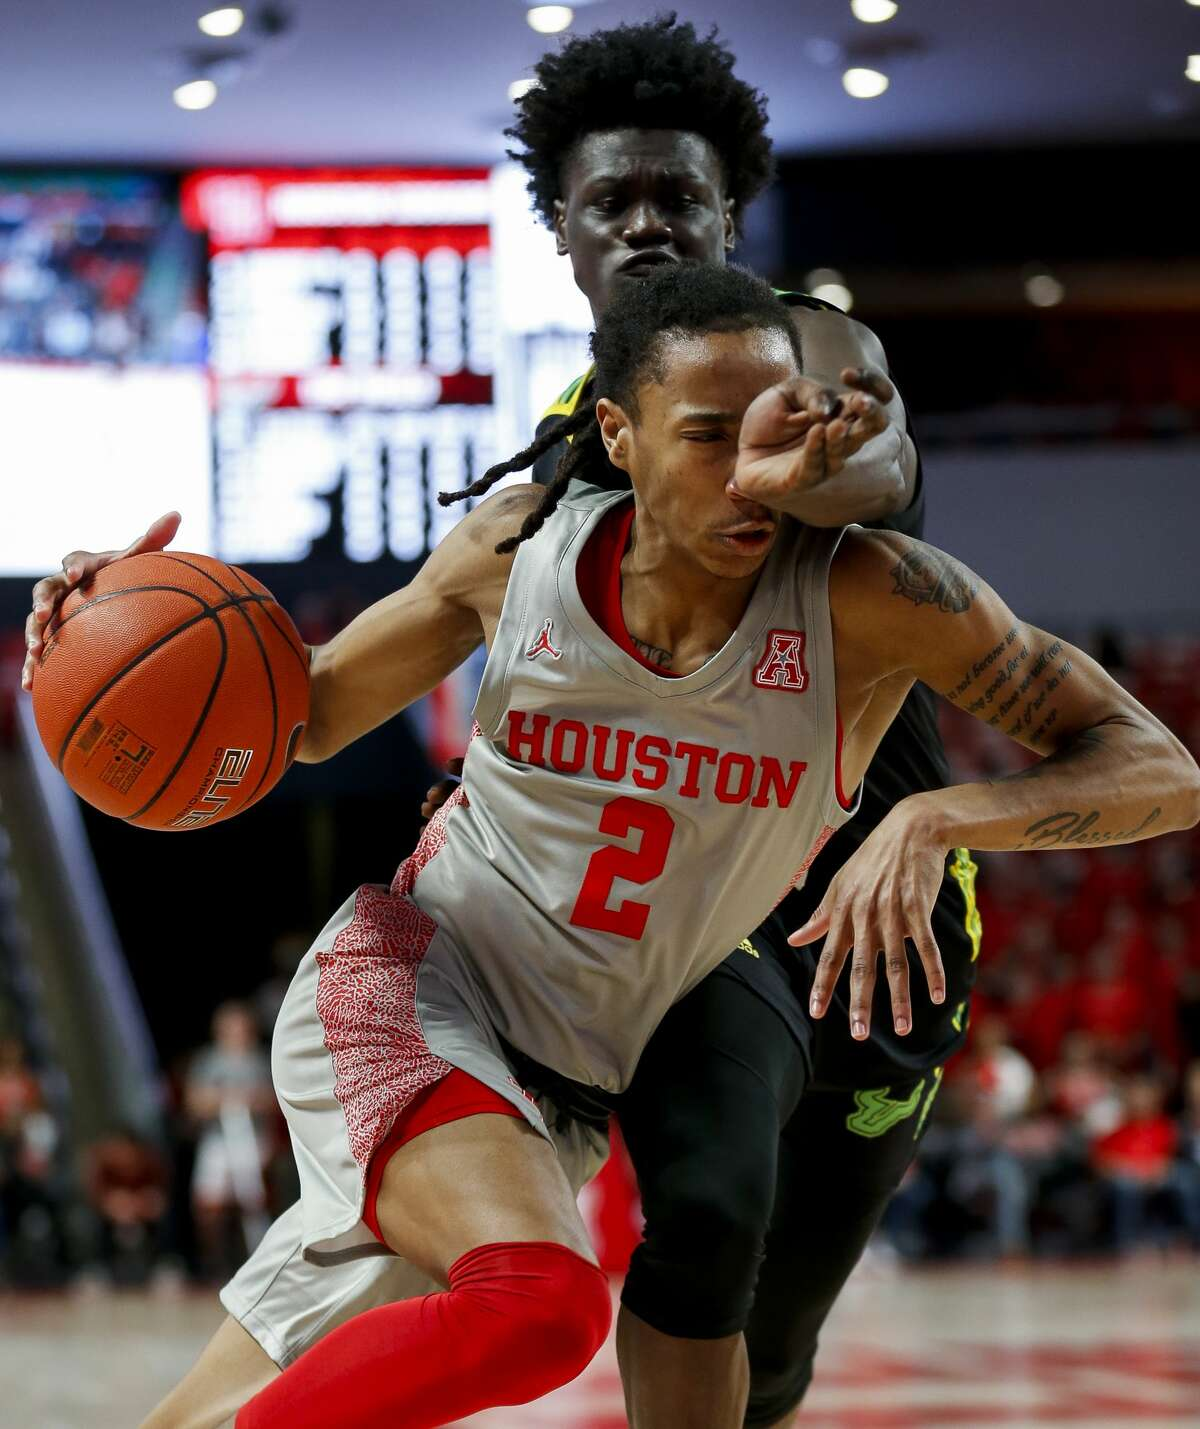 Houston Cougars guard Caleb Mills (2) tries to get to the basket against South Florida Bulls guard Ezacuras Dawson III (2) during the second half of an NCAA game at the Fertitta Center Sunday, Jan. 26, 2020, in Houston. The Cougars won 68-49.